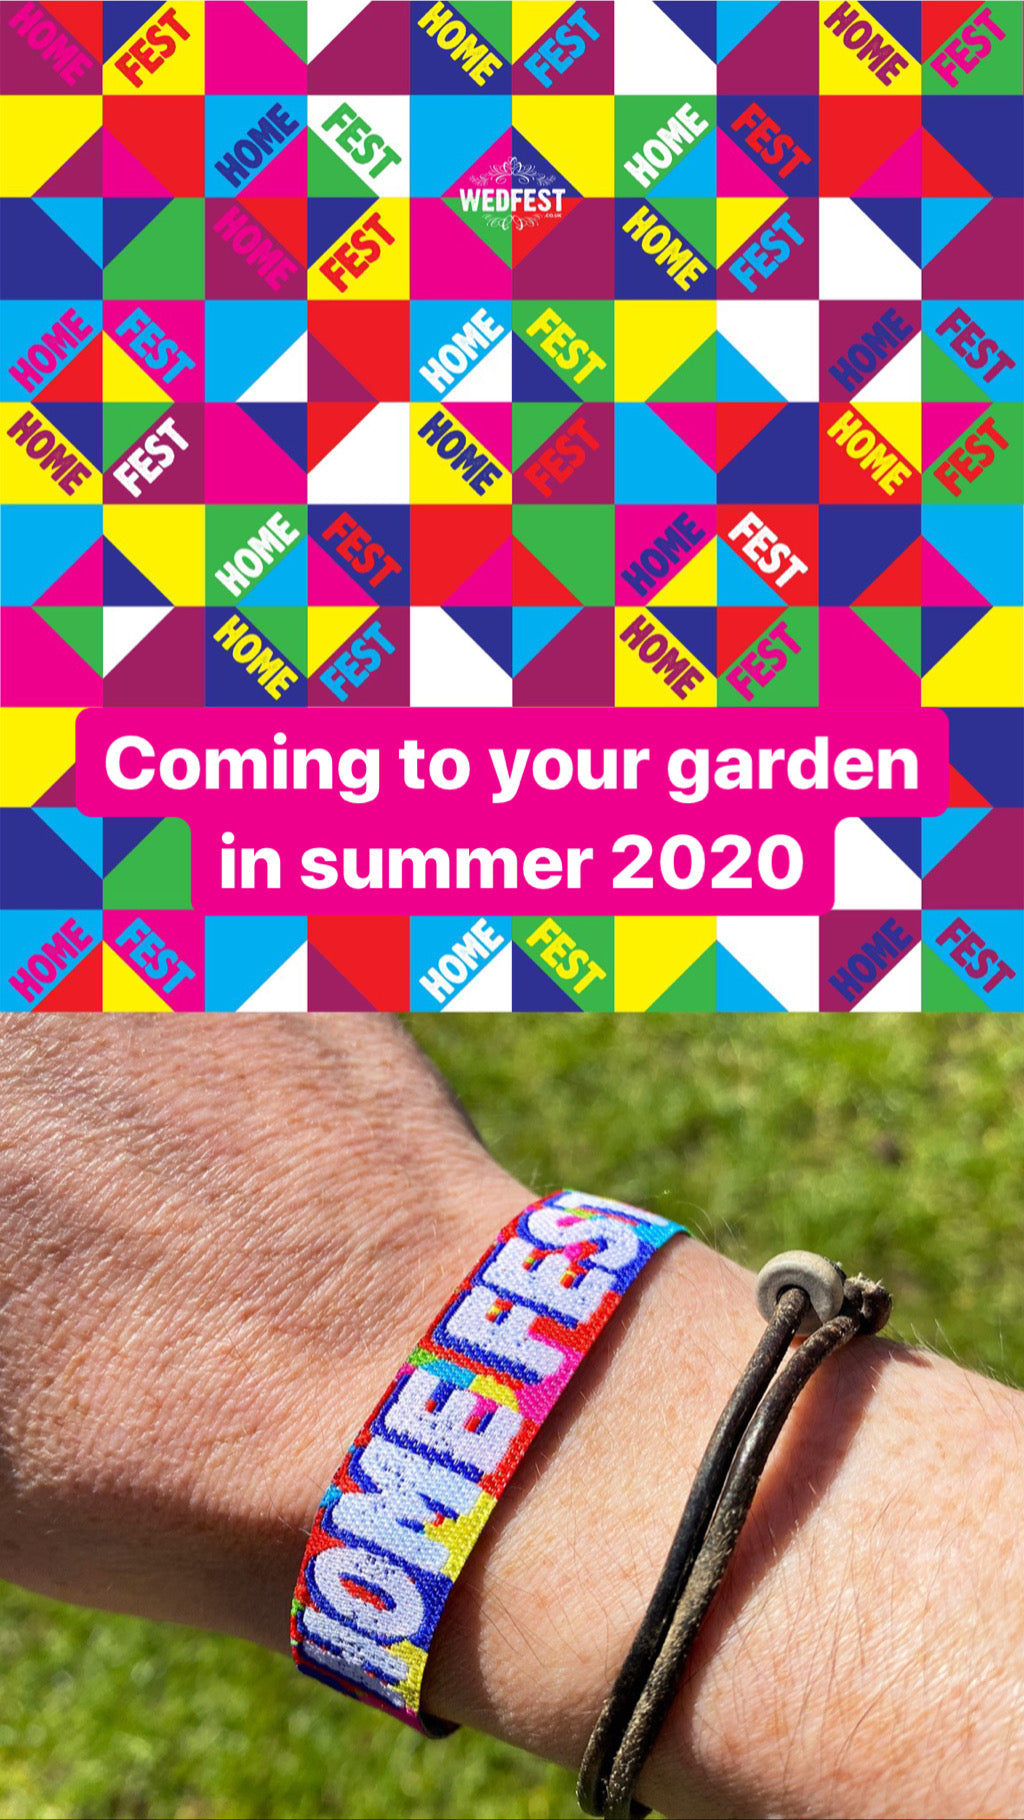 HOMEFEST FESTIVAL 2020 PARTY AT HOME WRISTBANDS